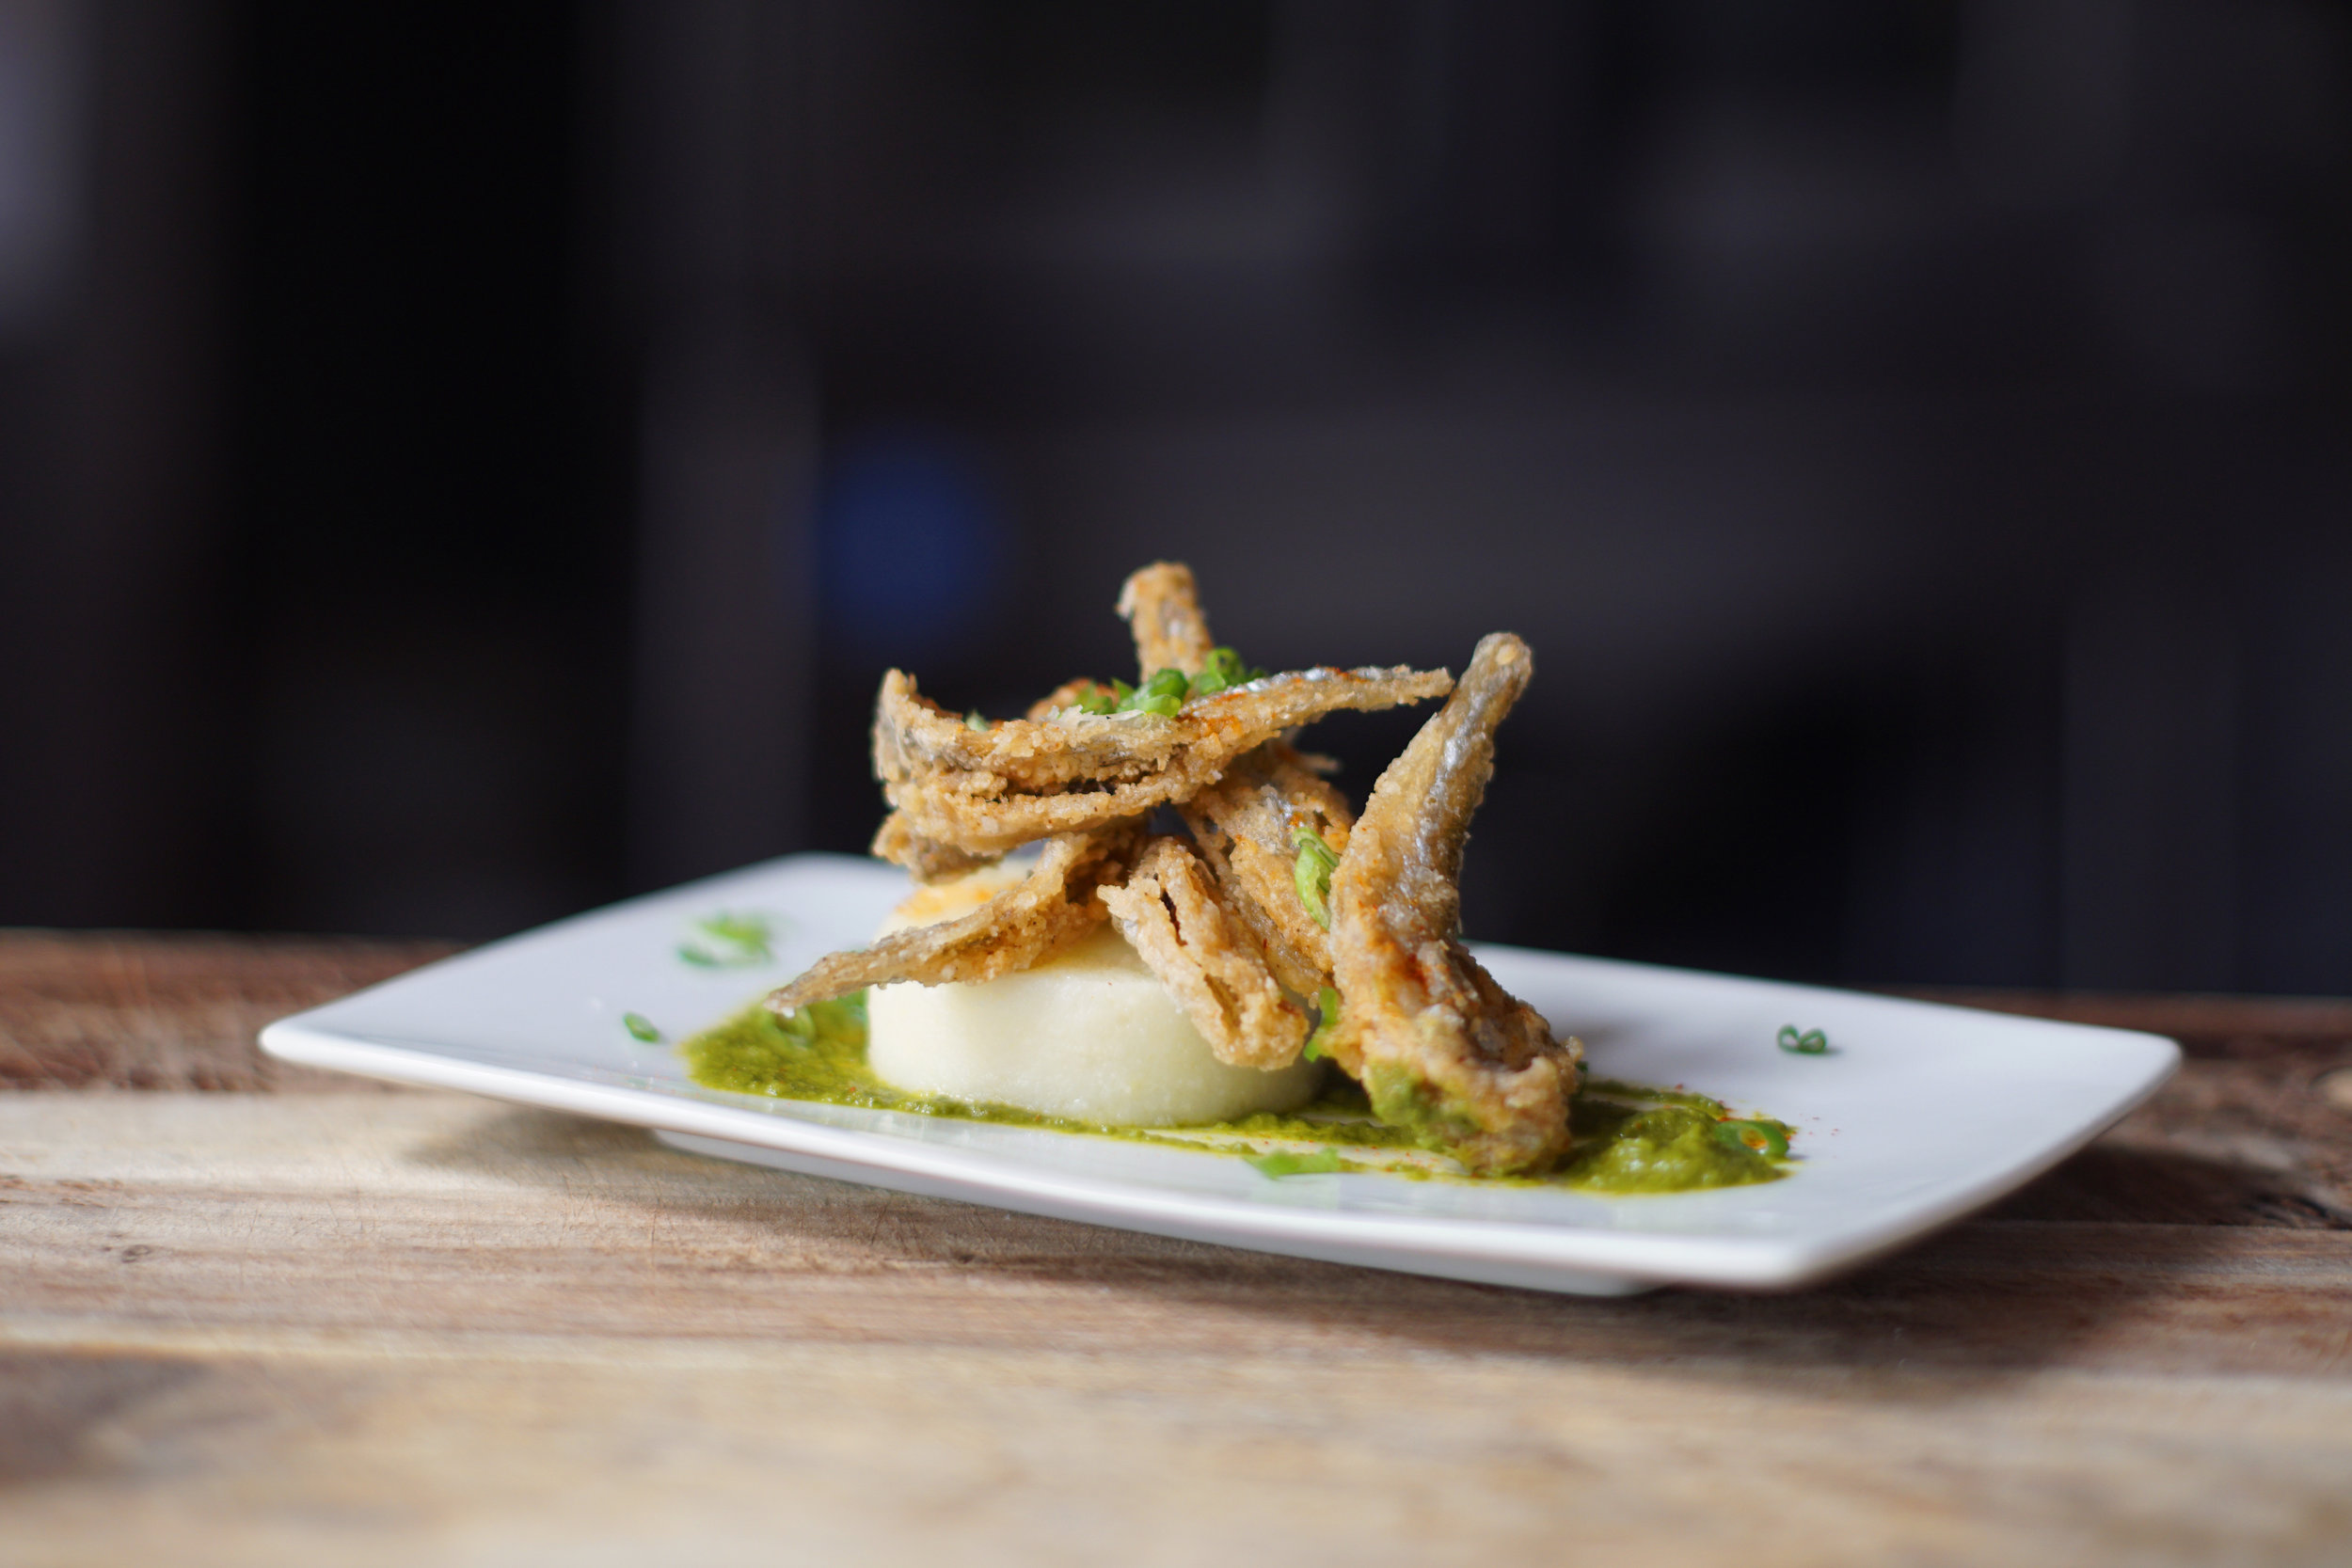 The Chop Bar's Fried Smelts